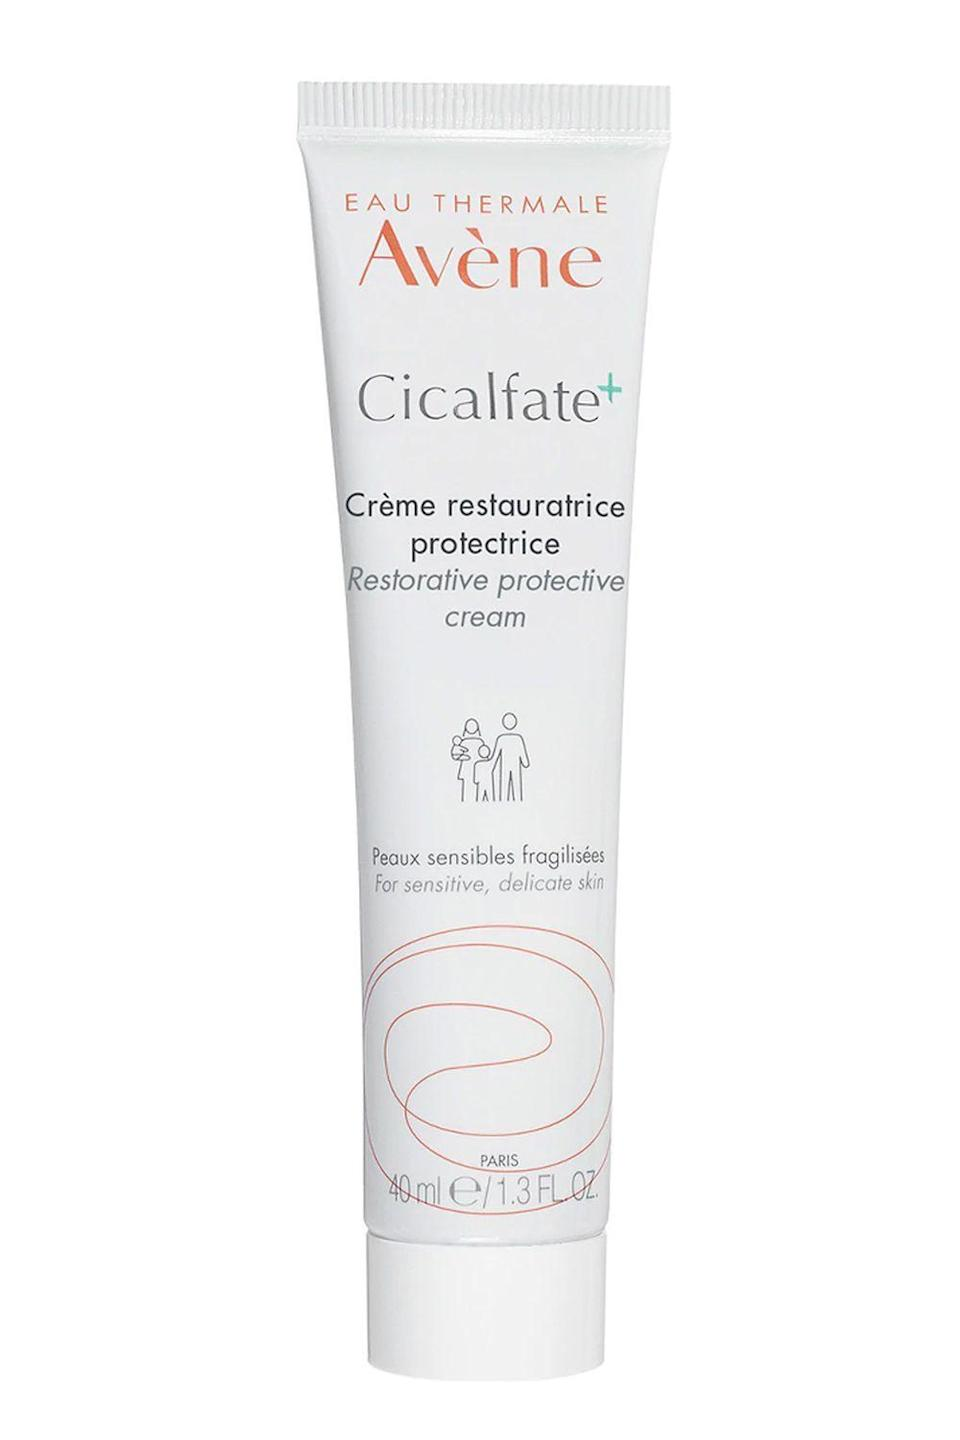 """<p><strong>Avene</strong></p><p>dermstore.com</p><p><strong>$42.00</strong></p><p><a href=""""https://go.redirectingat.com?id=74968X1596630&url=https%3A%2F%2Fwww.dermstore.com%2Fproduct_Cicalfate%2BRestorative%2BProtective%2BCream%2B_83646.htm&sref=https%3A%2F%2Fwww.cosmopolitan.com%2Fstyle-beauty%2Fbeauty%2Fg35089763%2Fbest-rosacea-skin-care-products%2F"""" rel=""""nofollow noopener"""" target=""""_blank"""" data-ylk=""""slk:Shop Now"""" class=""""link rapid-noclick-resp"""">Shop Now</a></p><p>Made with a blend of restorative minerals and soothing thermal spring water, this nourishing <a href=""""https://www.cosmopolitan.com/style-beauty/beauty/g21950910/best-face-moisturizer-skin-type/"""" rel=""""nofollow noopener"""" target=""""_blank"""" data-ylk=""""slk:cream"""" class=""""link rapid-noclick-resp"""">cream</a> is <strong>a must for anyone with rosacea—especially during the dry winter months</strong>. Smooth it on clean skin both morning and night to relieve redness and inflammation.</p>"""